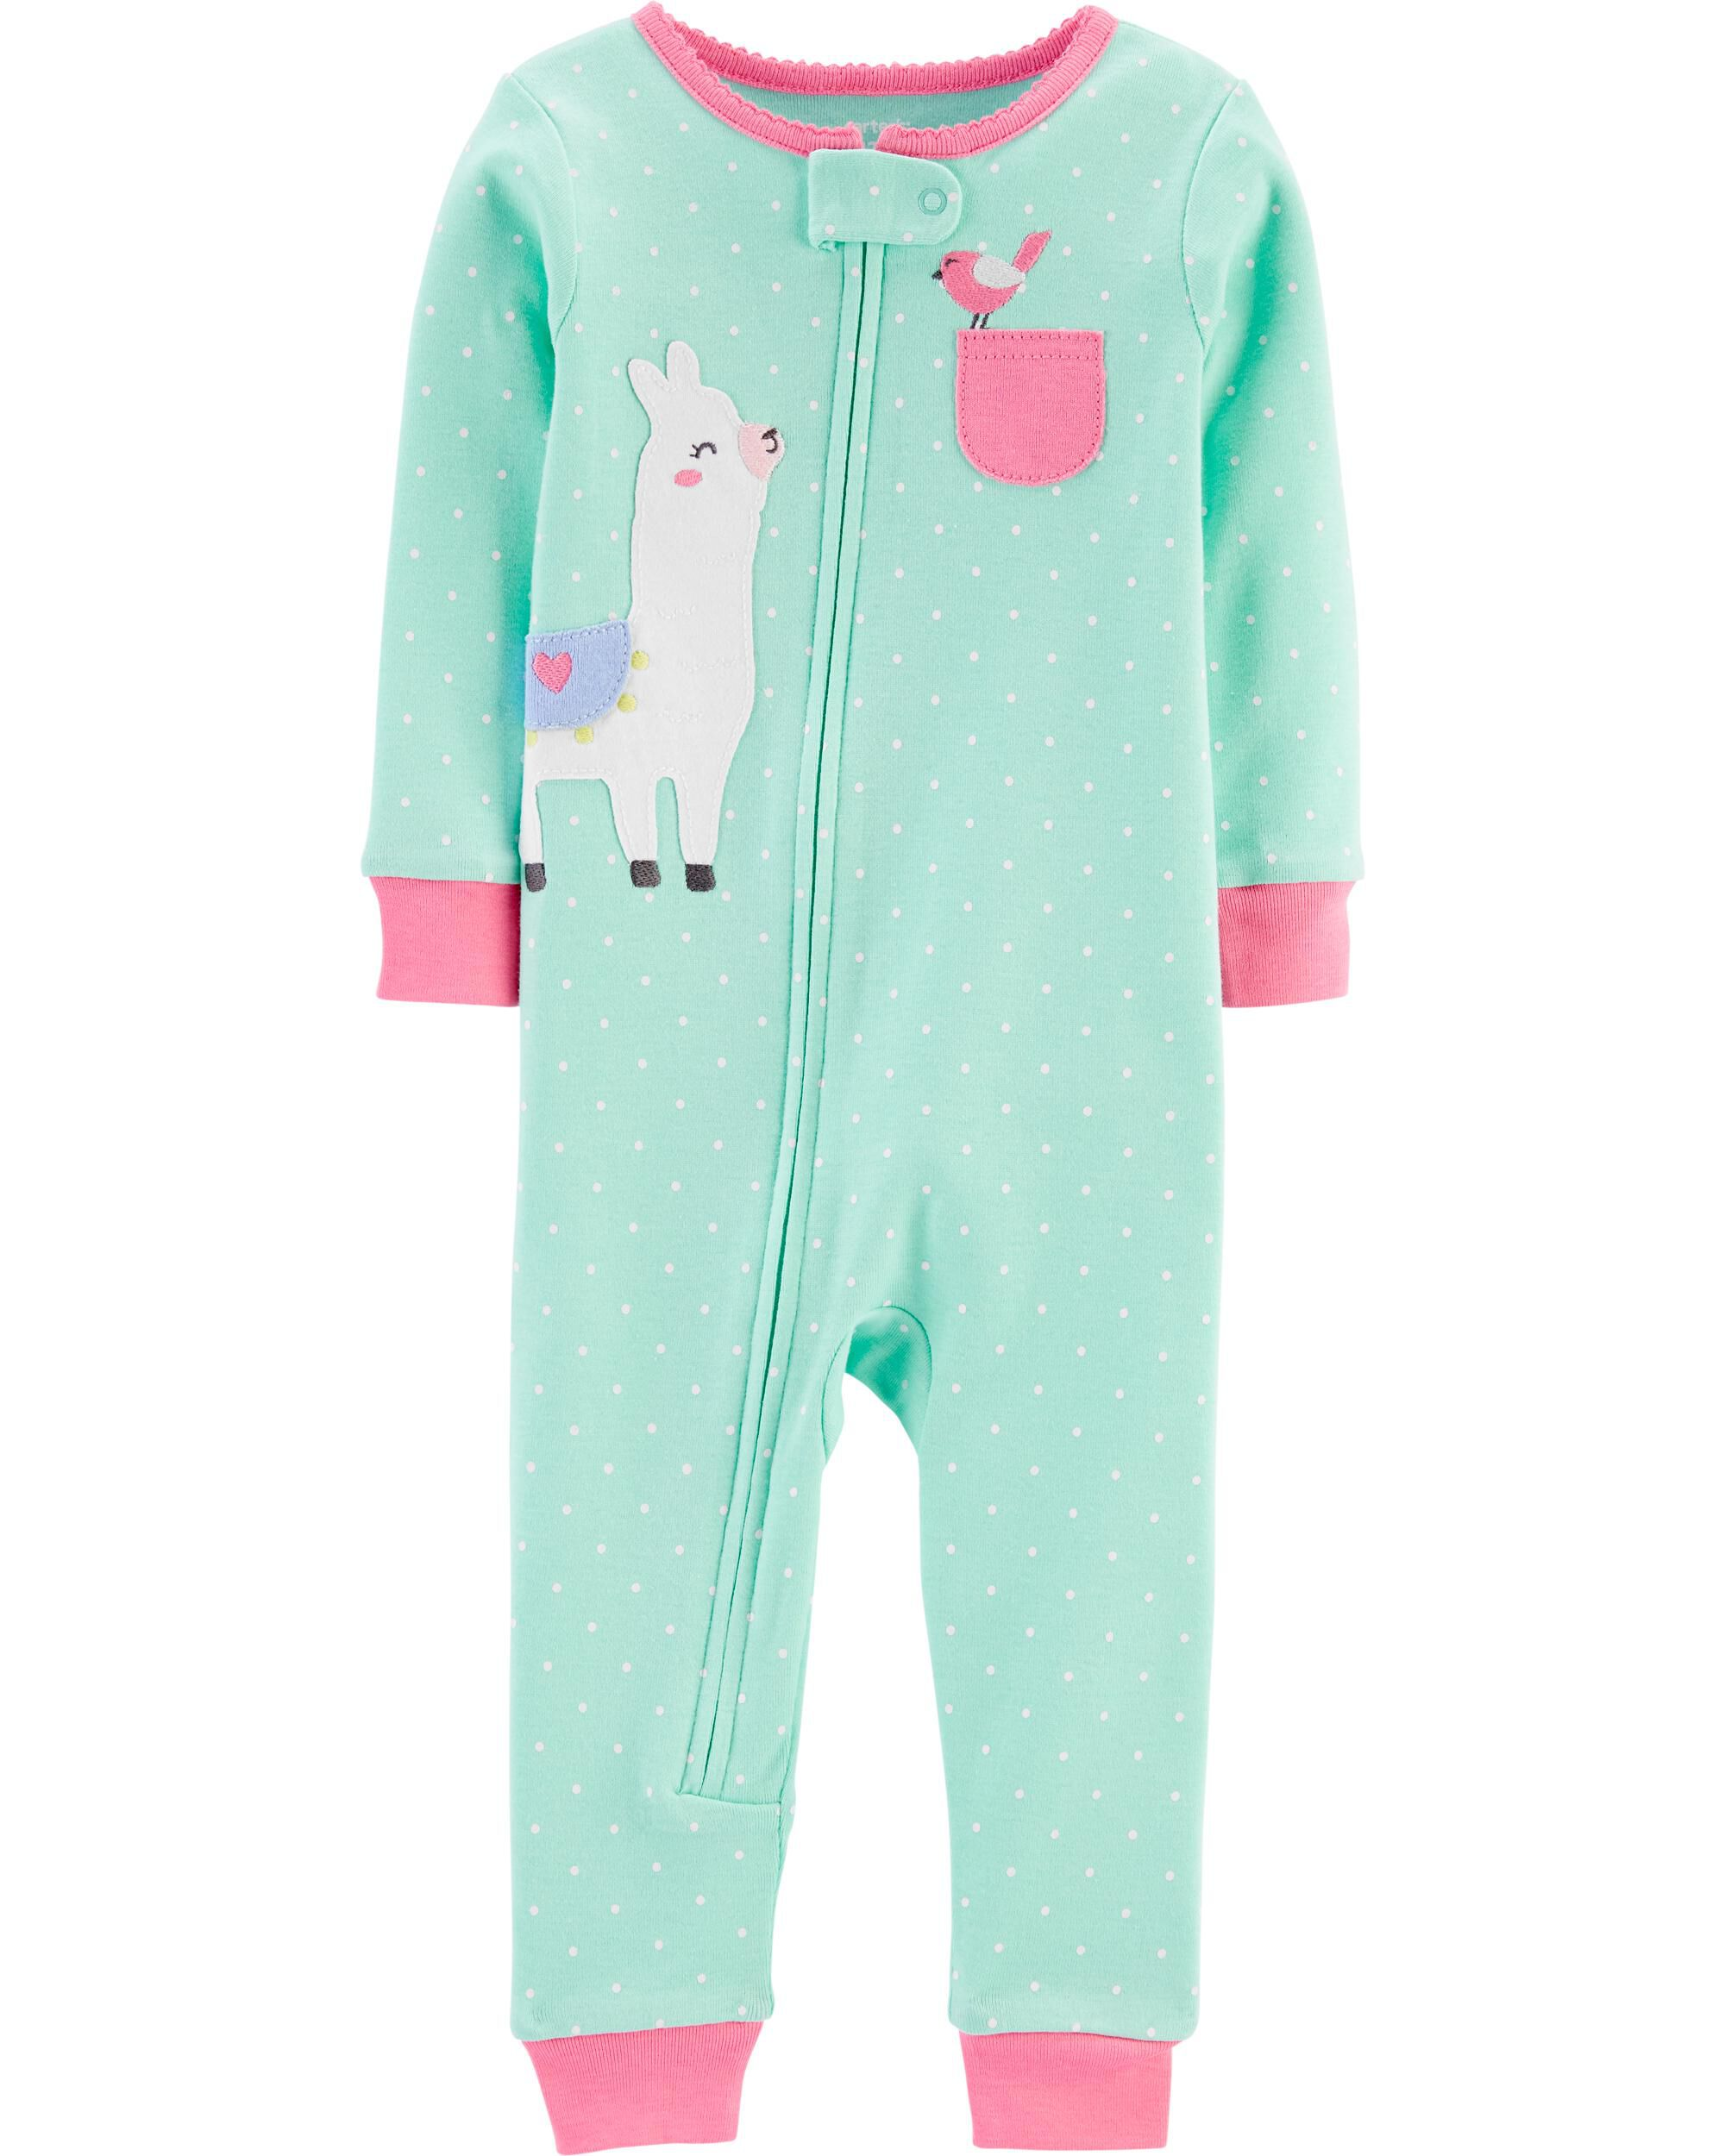 *CLEARANCE* 1-Piece 100% Snug Fit Cotton Footless PJs